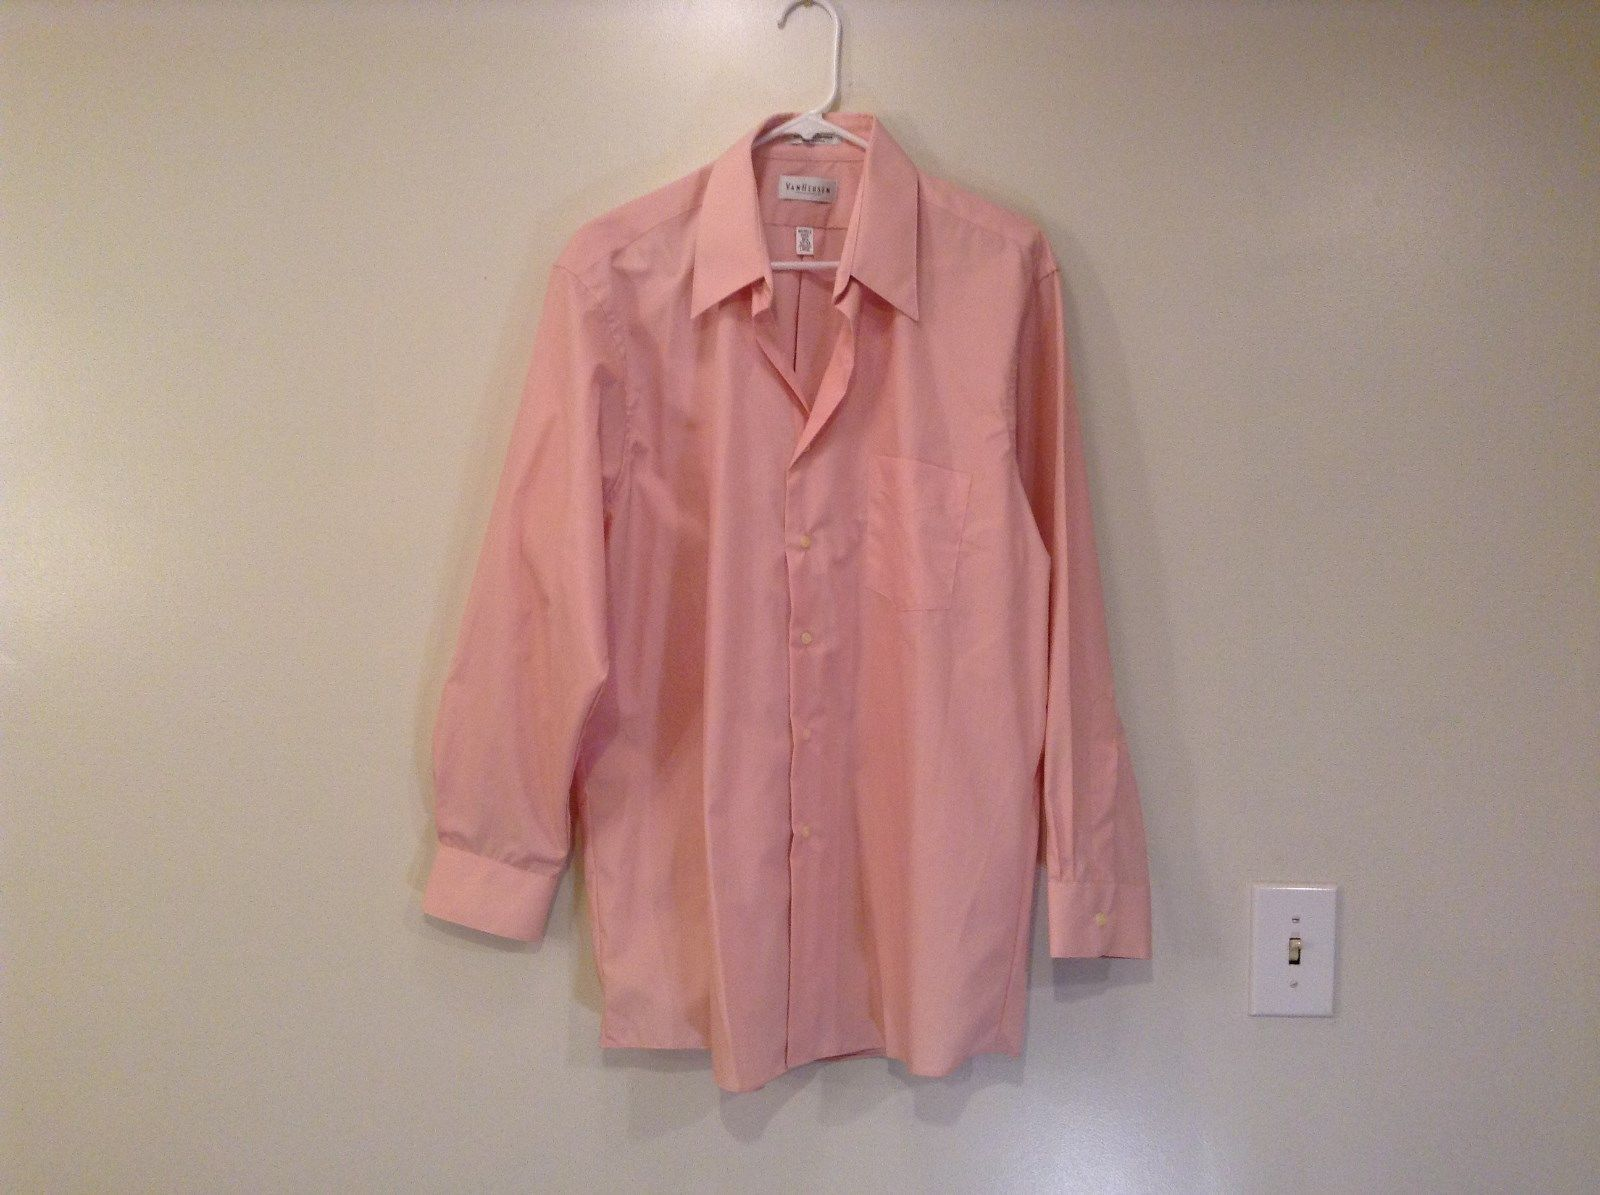 Van Heusen Size 32 Large Pink Poplin Long Sleeve Button Up Dress Shirt